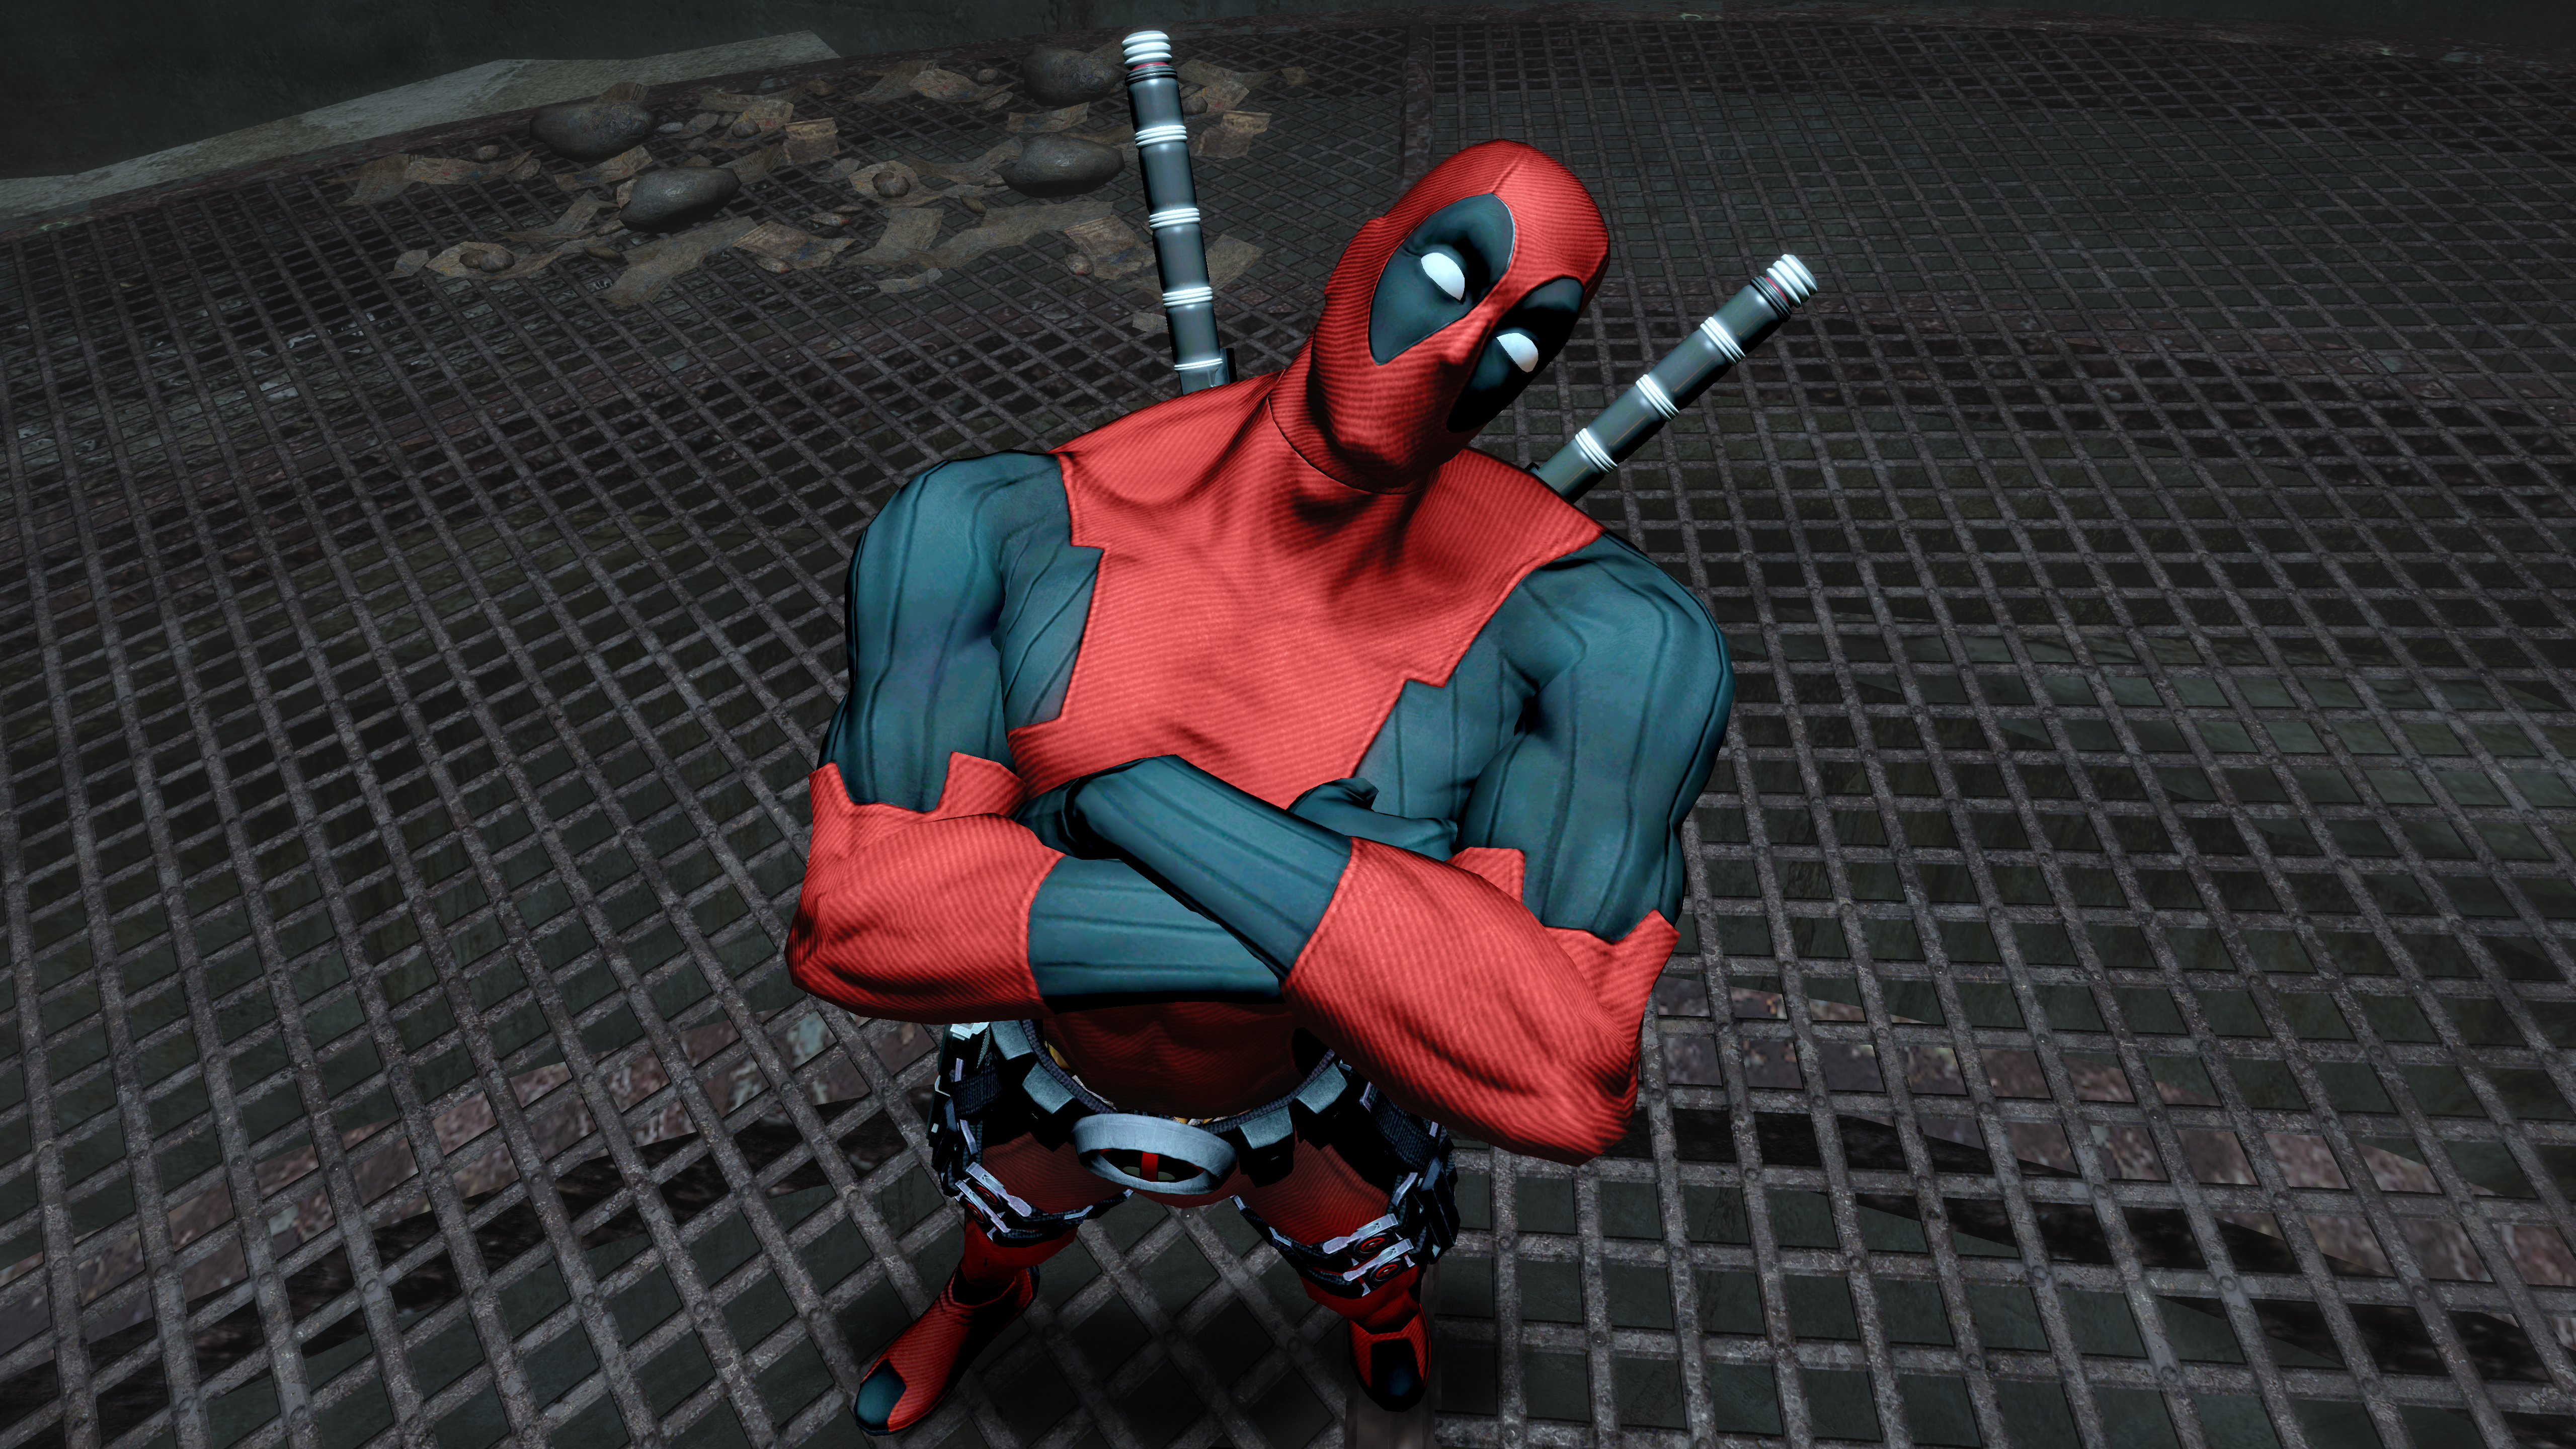 Deadpool hd wallpapers pictures images - Deadpool wallpaper hd ...